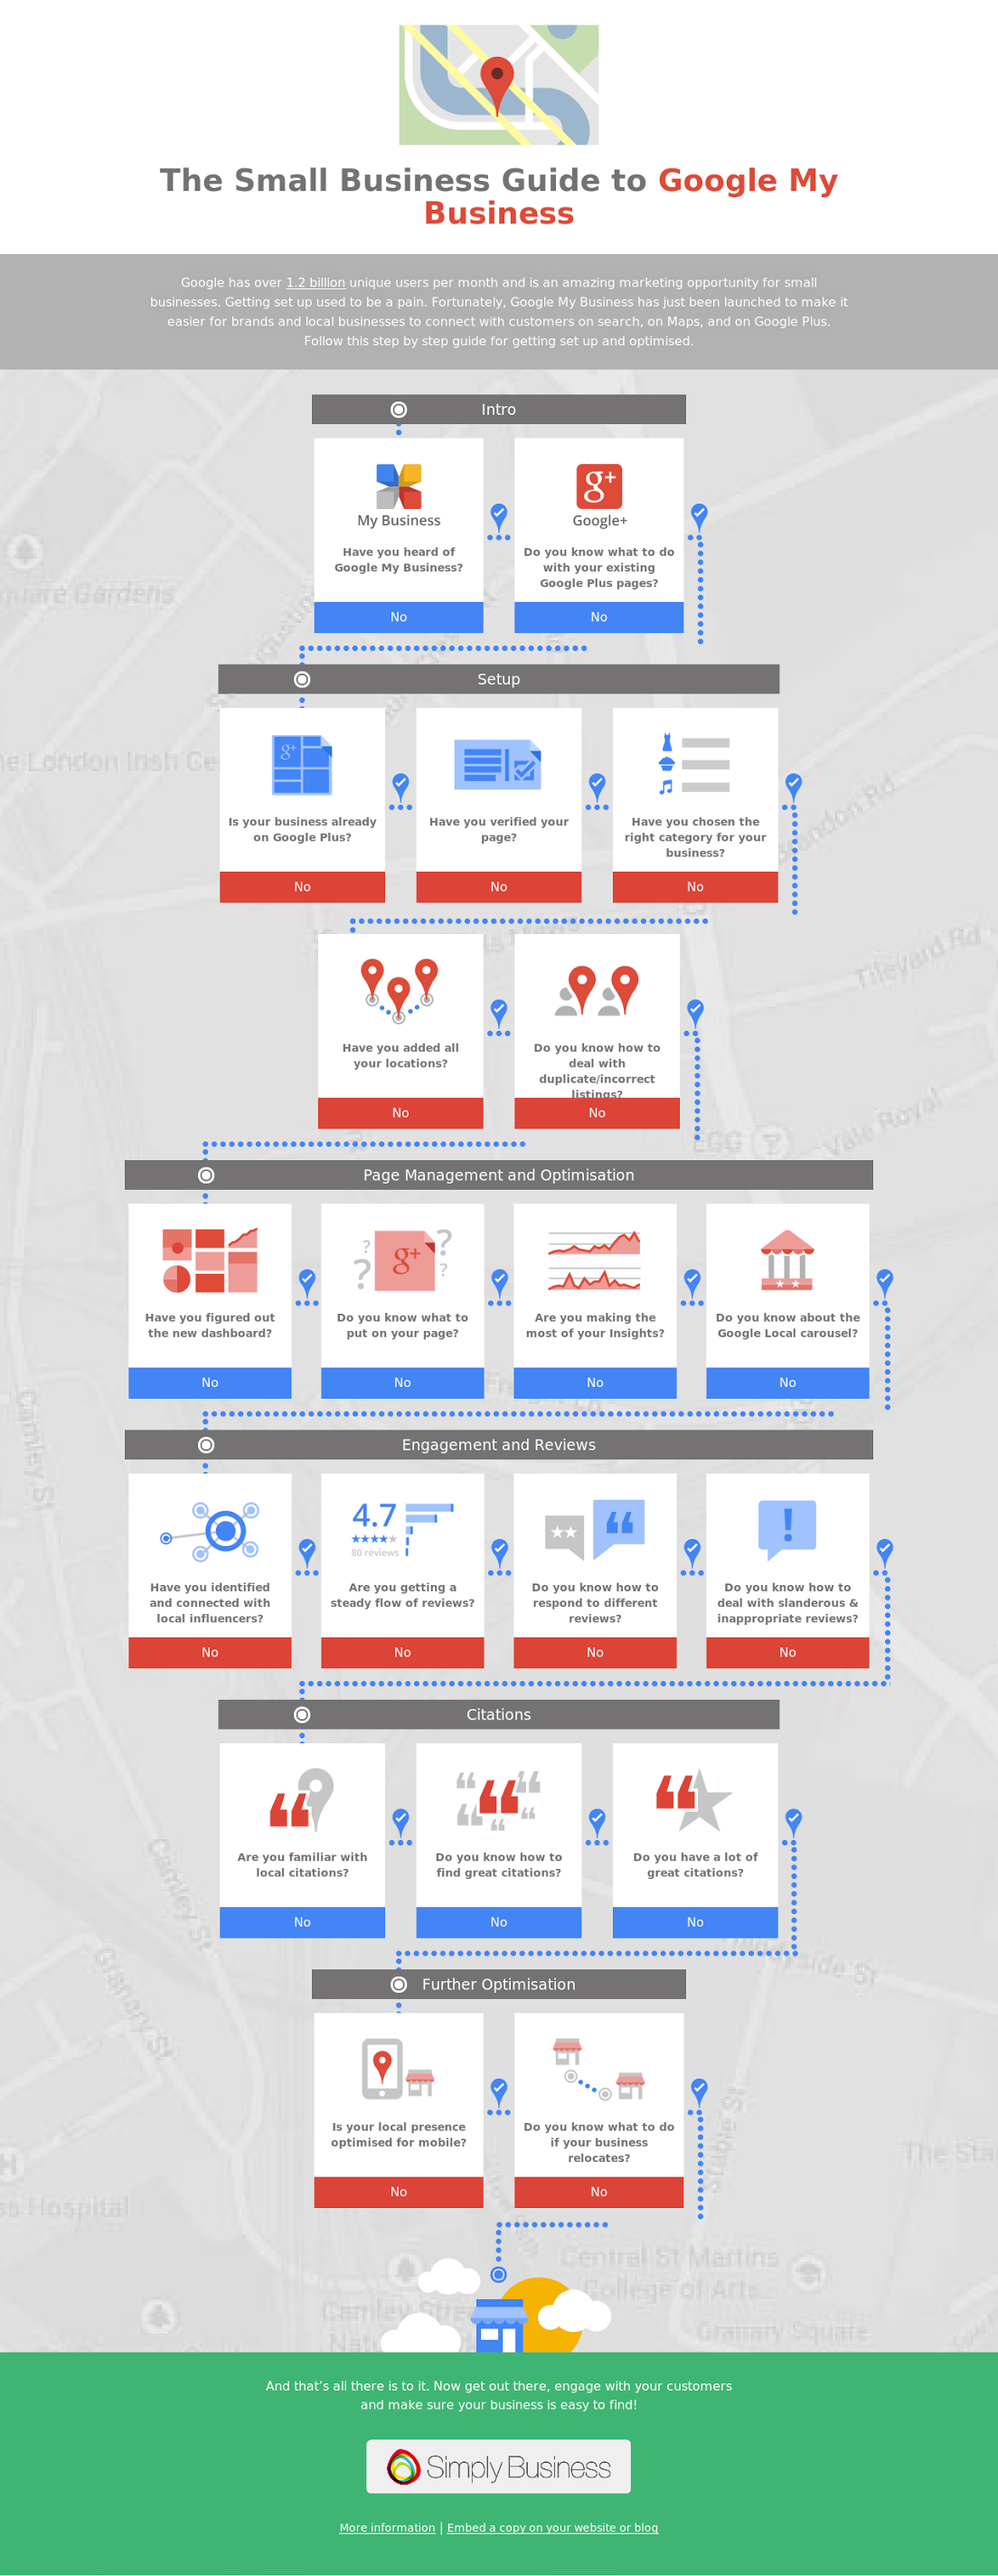 What is Google My Business and How Can Small Businesses Make the Most of It? #infographic #socialmedia #Google #Googleplus